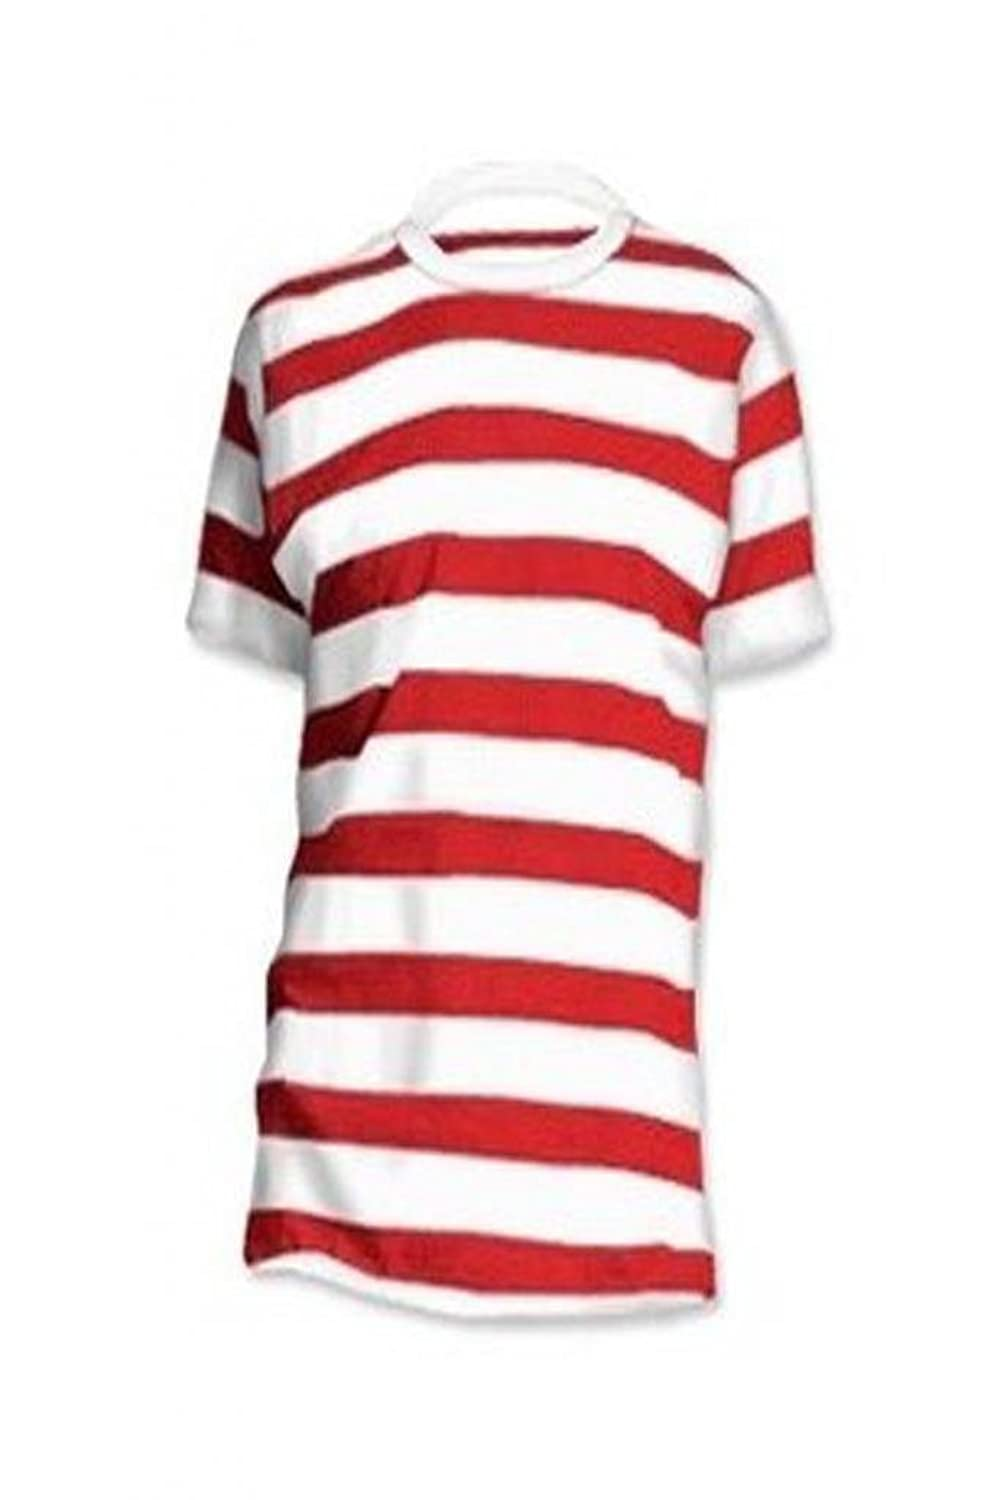 Momo Fashions Men's Red White Wally Short Sleeve T-Shirt White Red ...